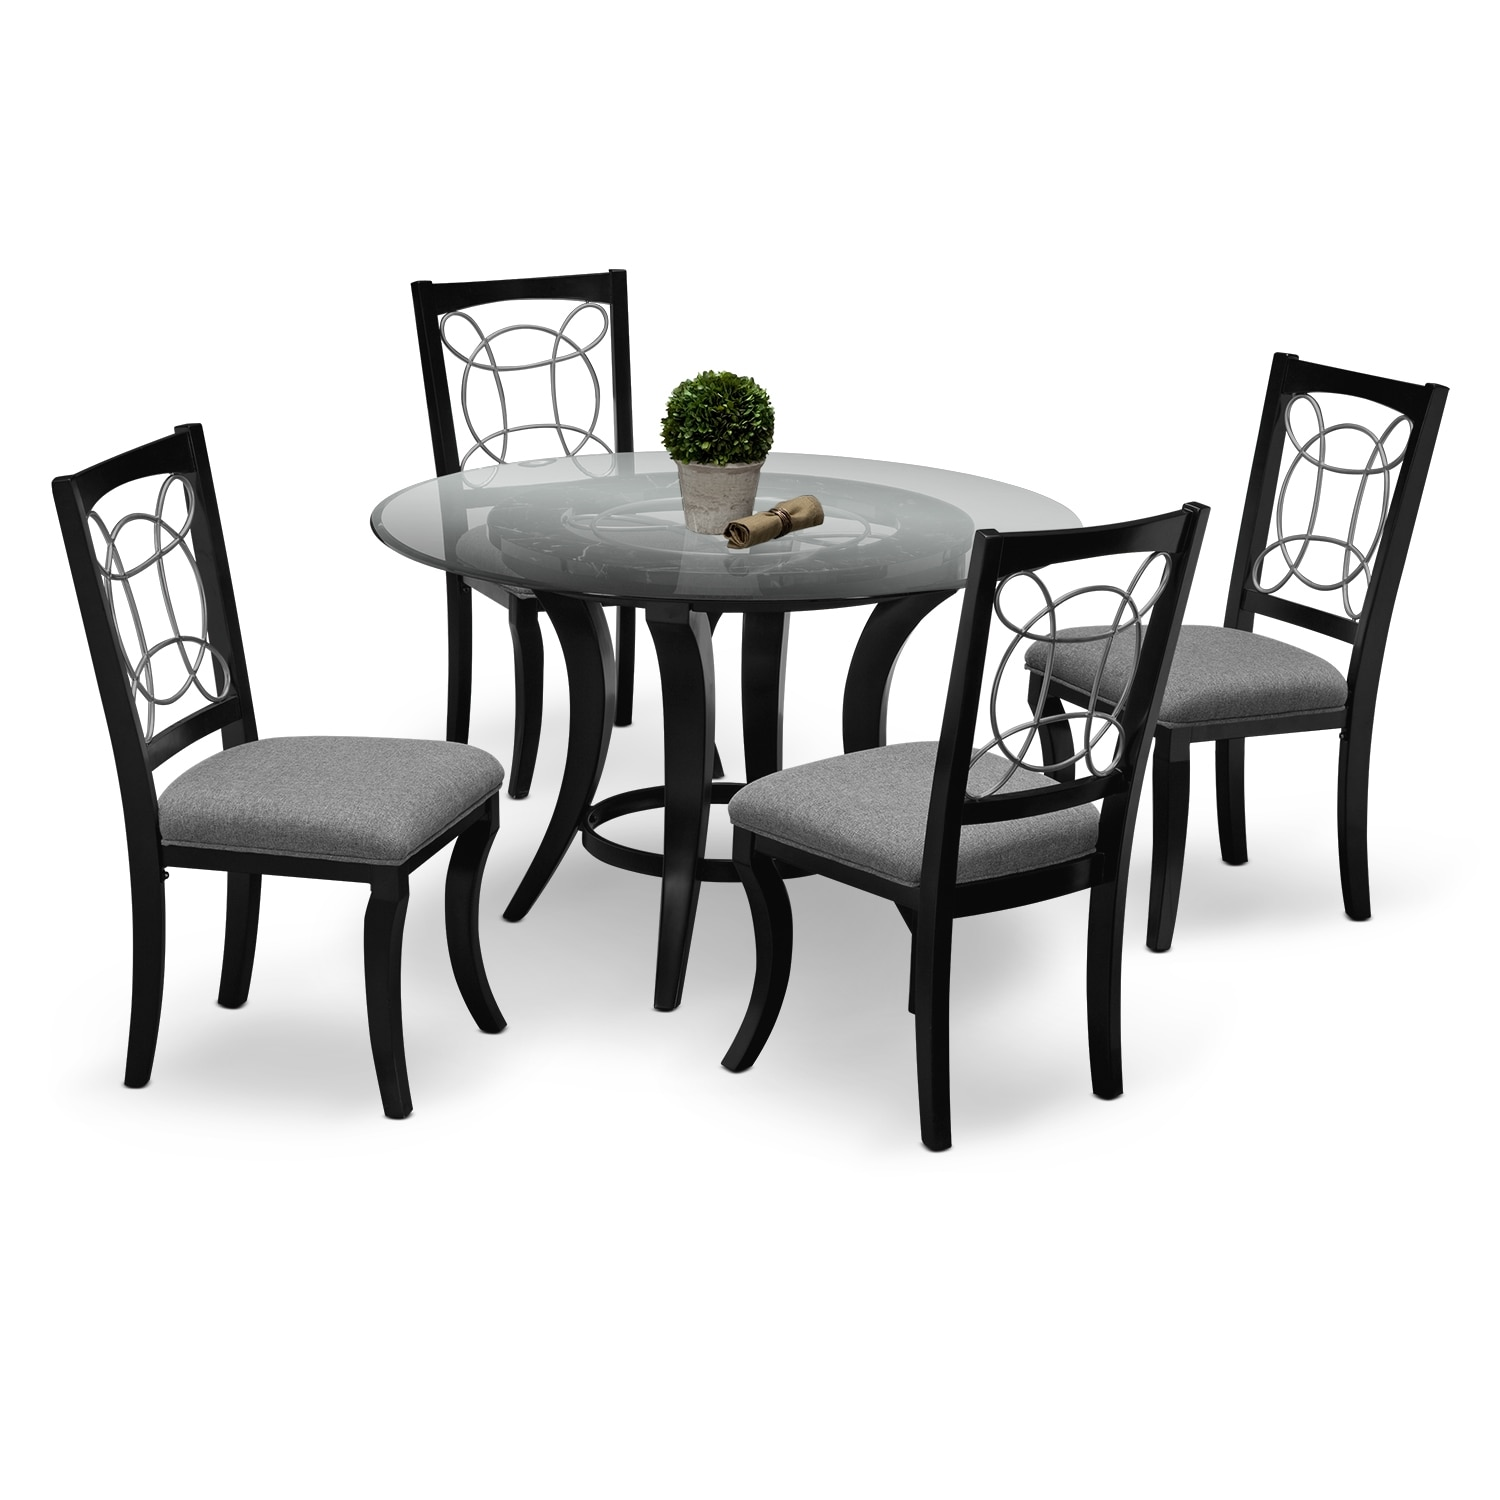 Dining Room Furniture - Pandora Table and 4 Chairs - Black